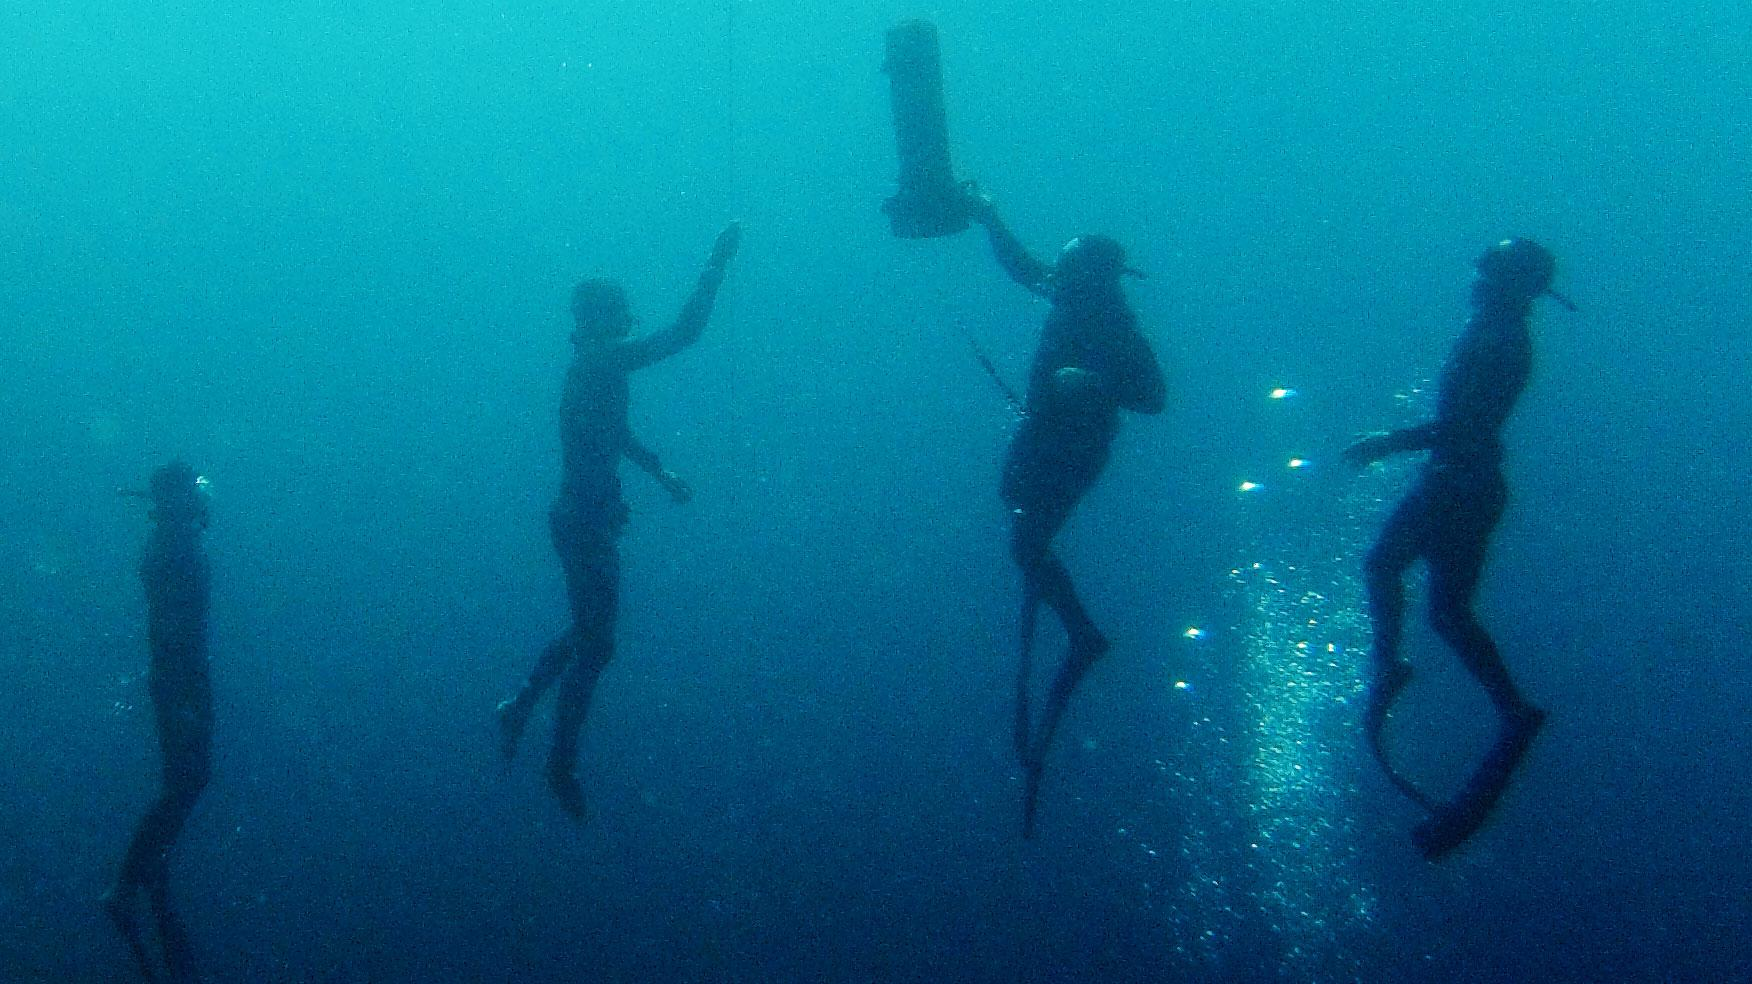 Some Competitors Say Free-Diving Needs A Safety Sea Change